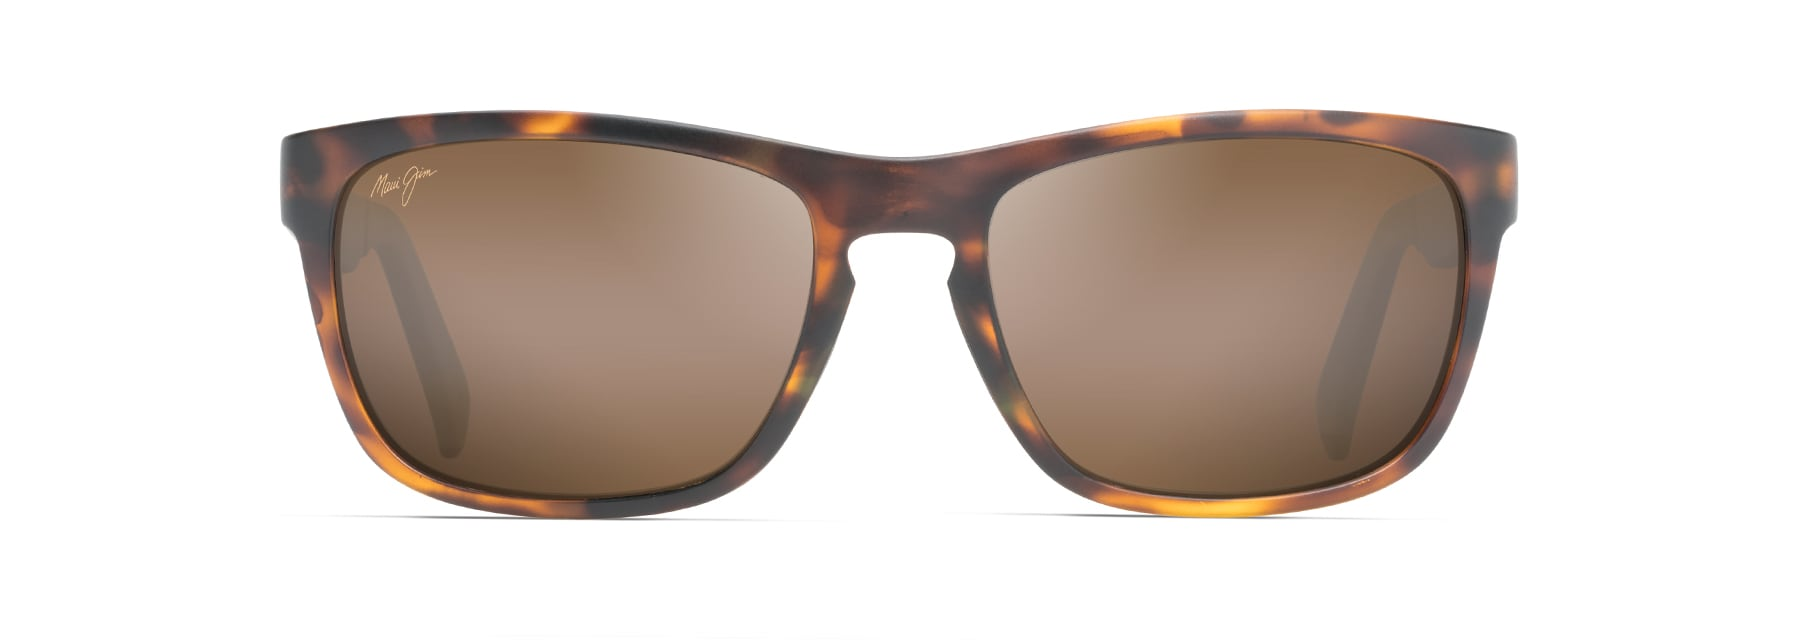 ee72310af361 South Swell Polarised Sunglasses | Maui Jim®